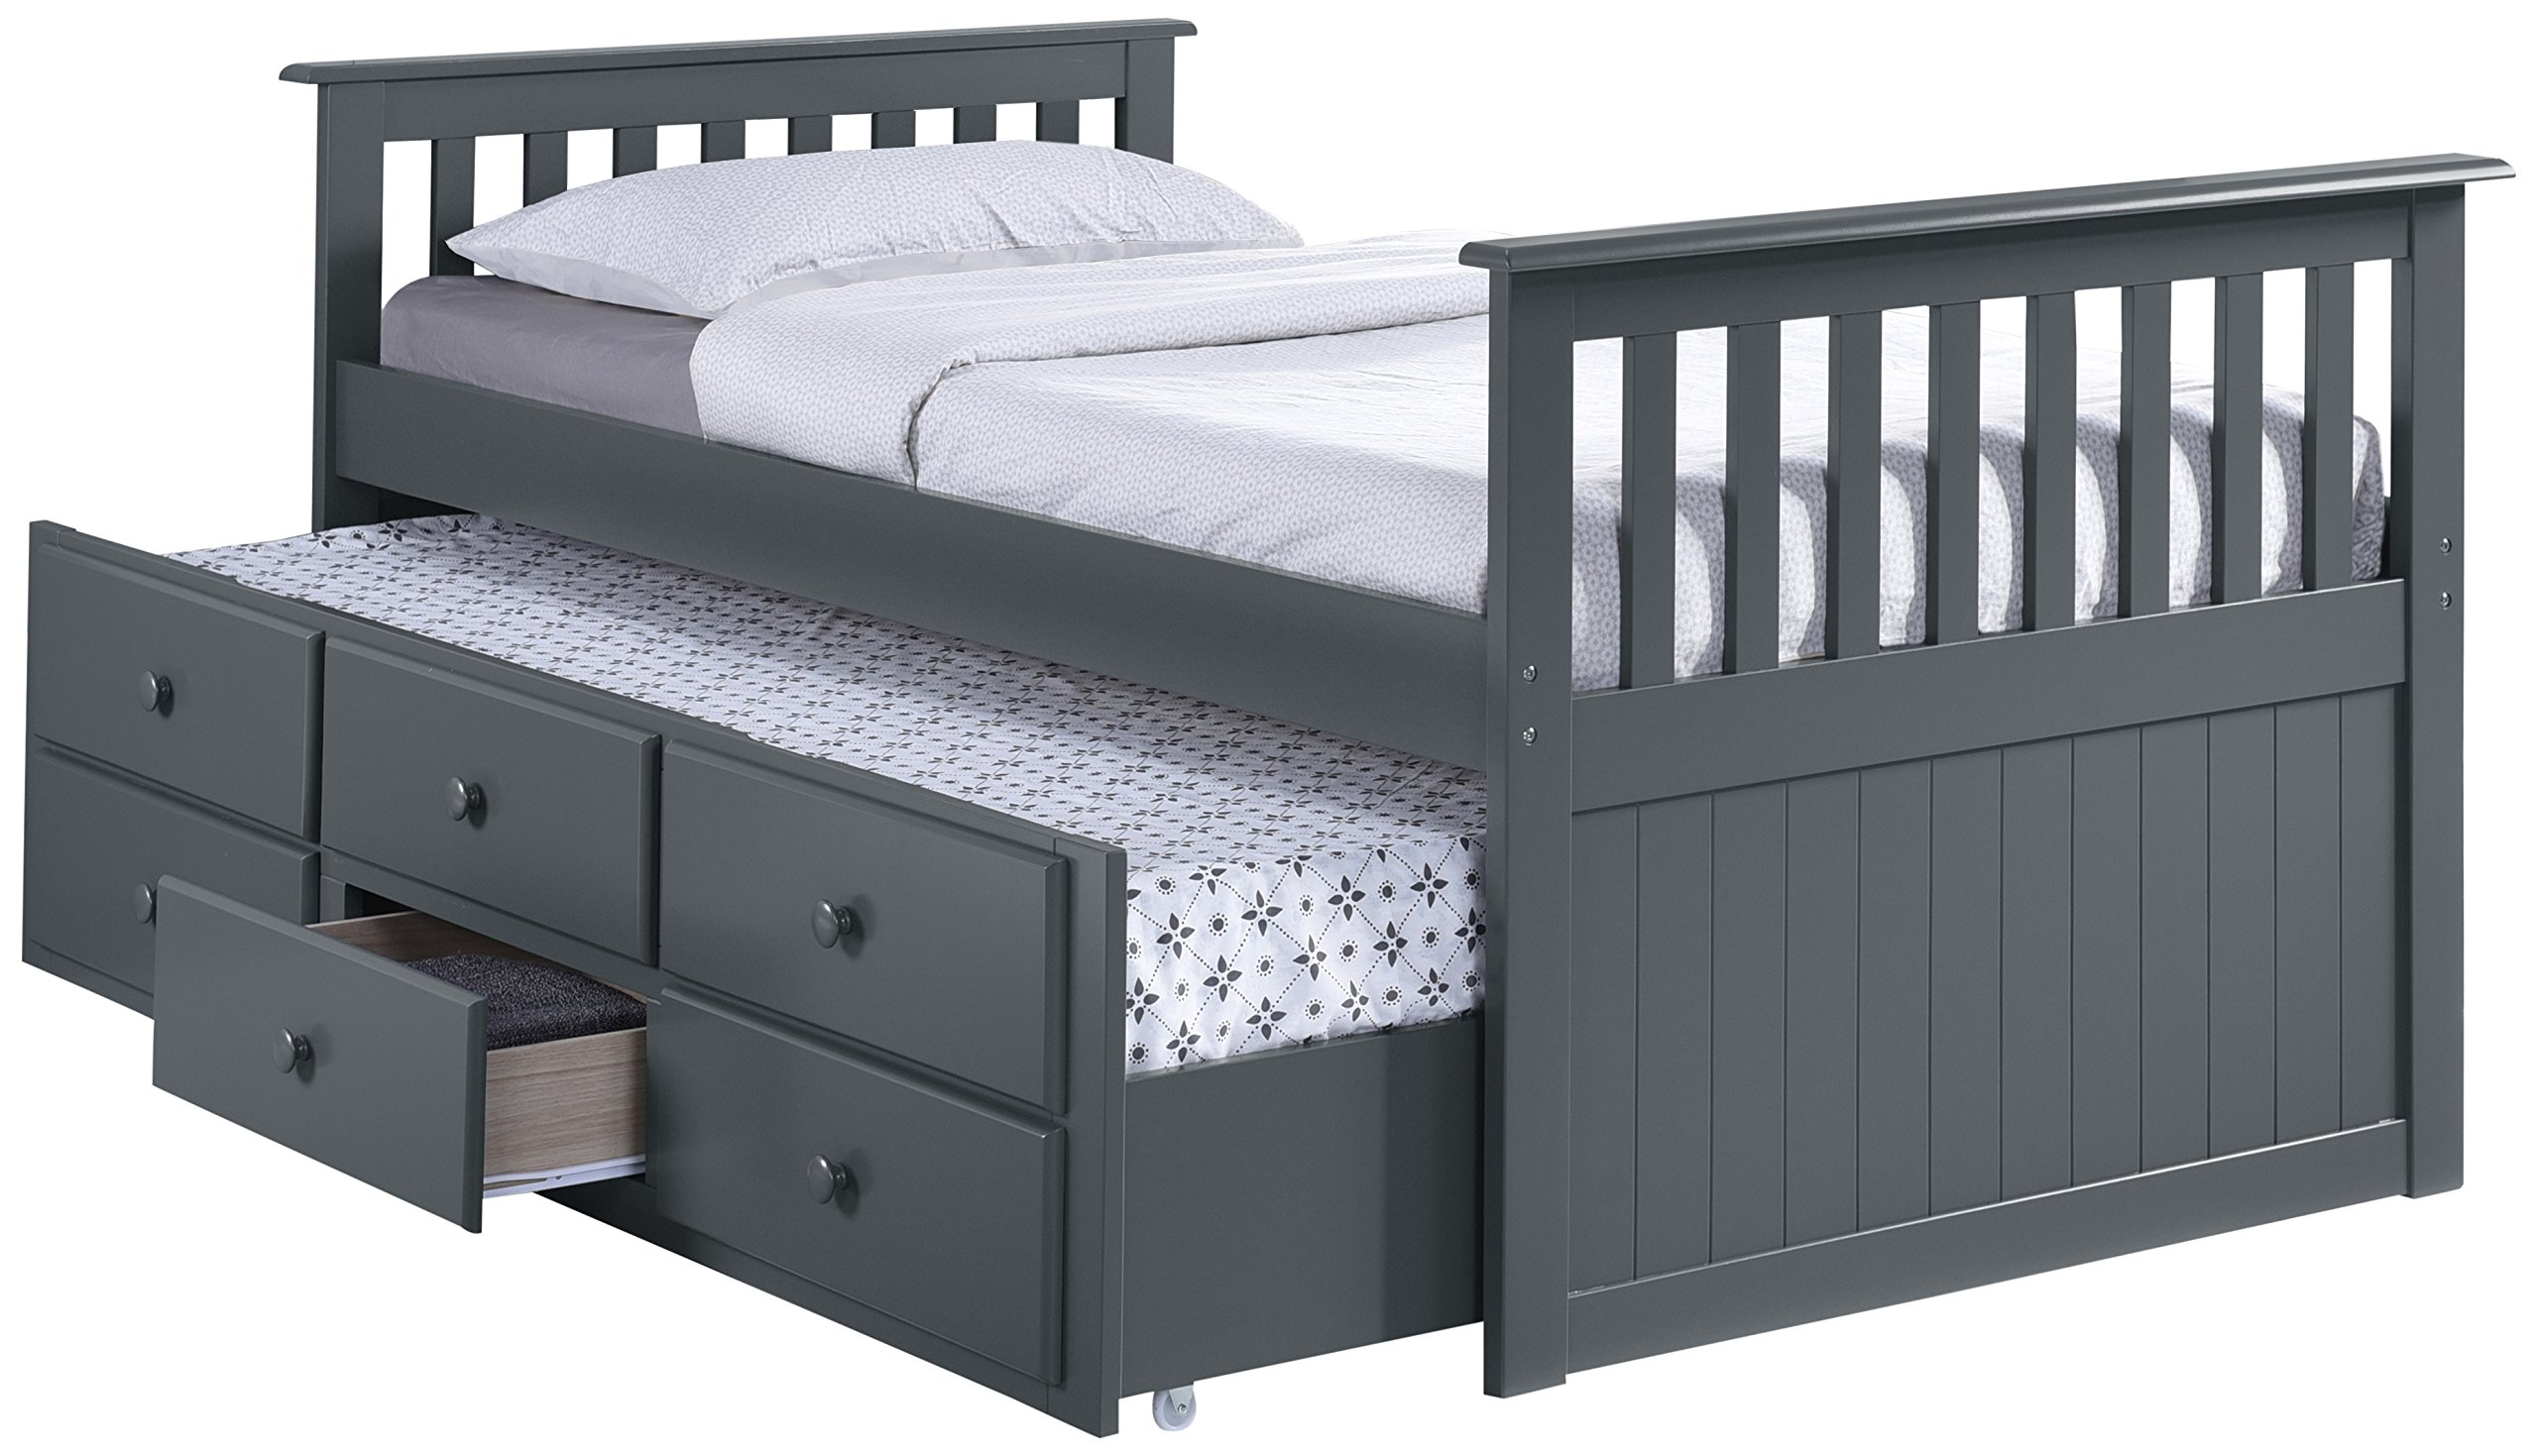 Broyhill Kids Marco Island Captain's Bed with Trundle Bed and Drawers, Twin, Gray, Twin-Sized Mattress (Not Included), Bunk Bed Alternative, Great for Sleepovers, Underbed Storage/Organization by Storkcraft